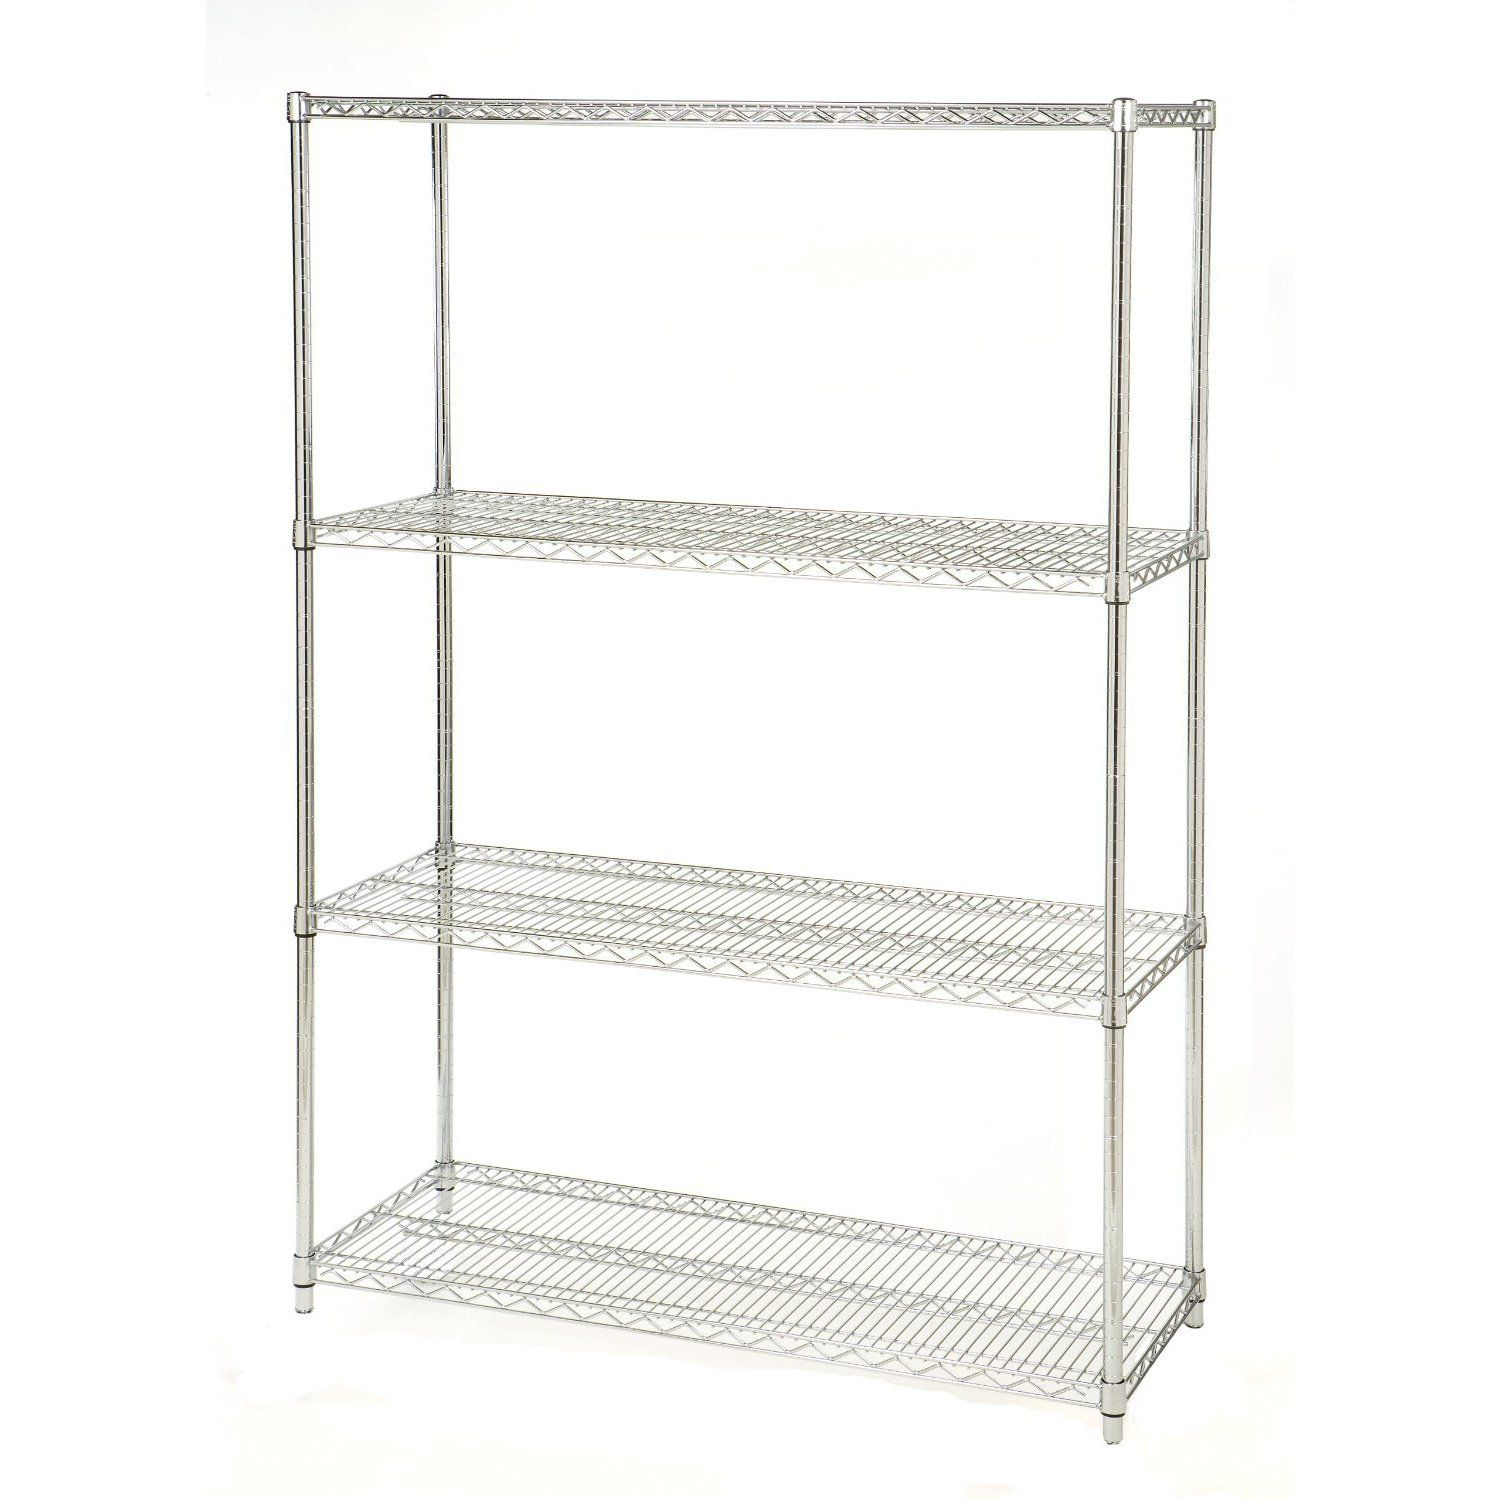 48 Inch Wide 4 Shelf Metal Storage Shelving Unit 72 Inch High Shelving Racks Storage Shelves Wire Shelving